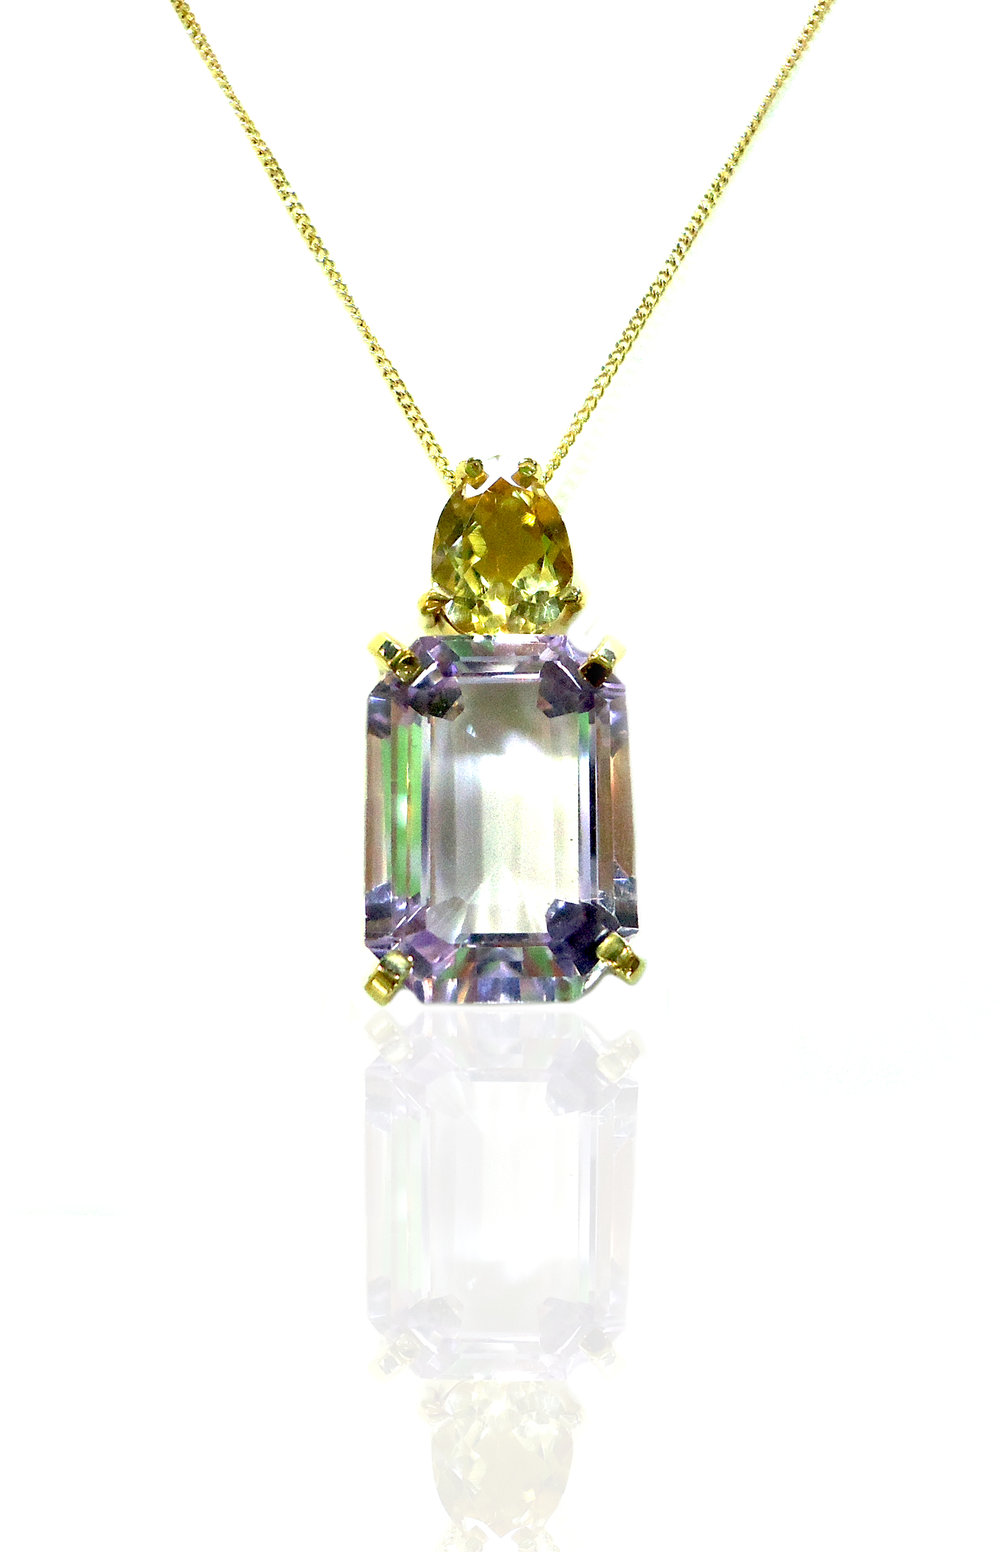 Amethyst Citrine pendant necklace!